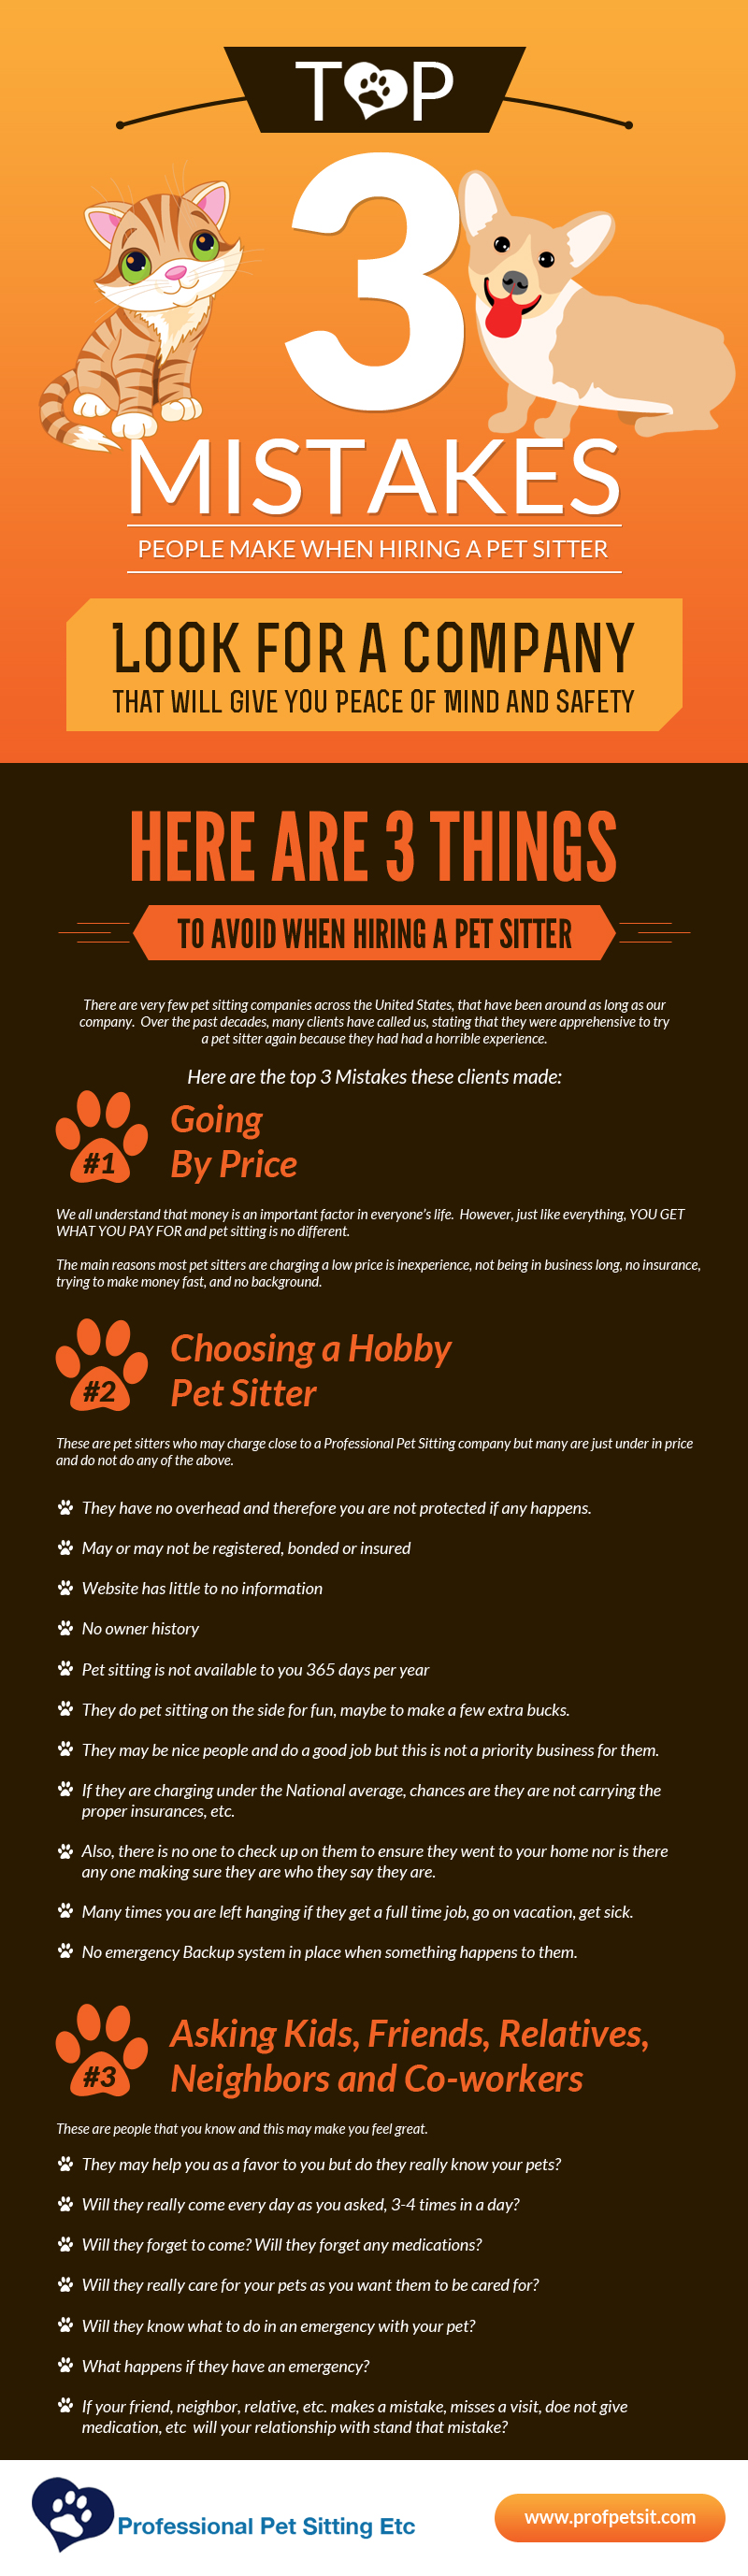 info graphic 3 mistakes professional pet sitting etc blog